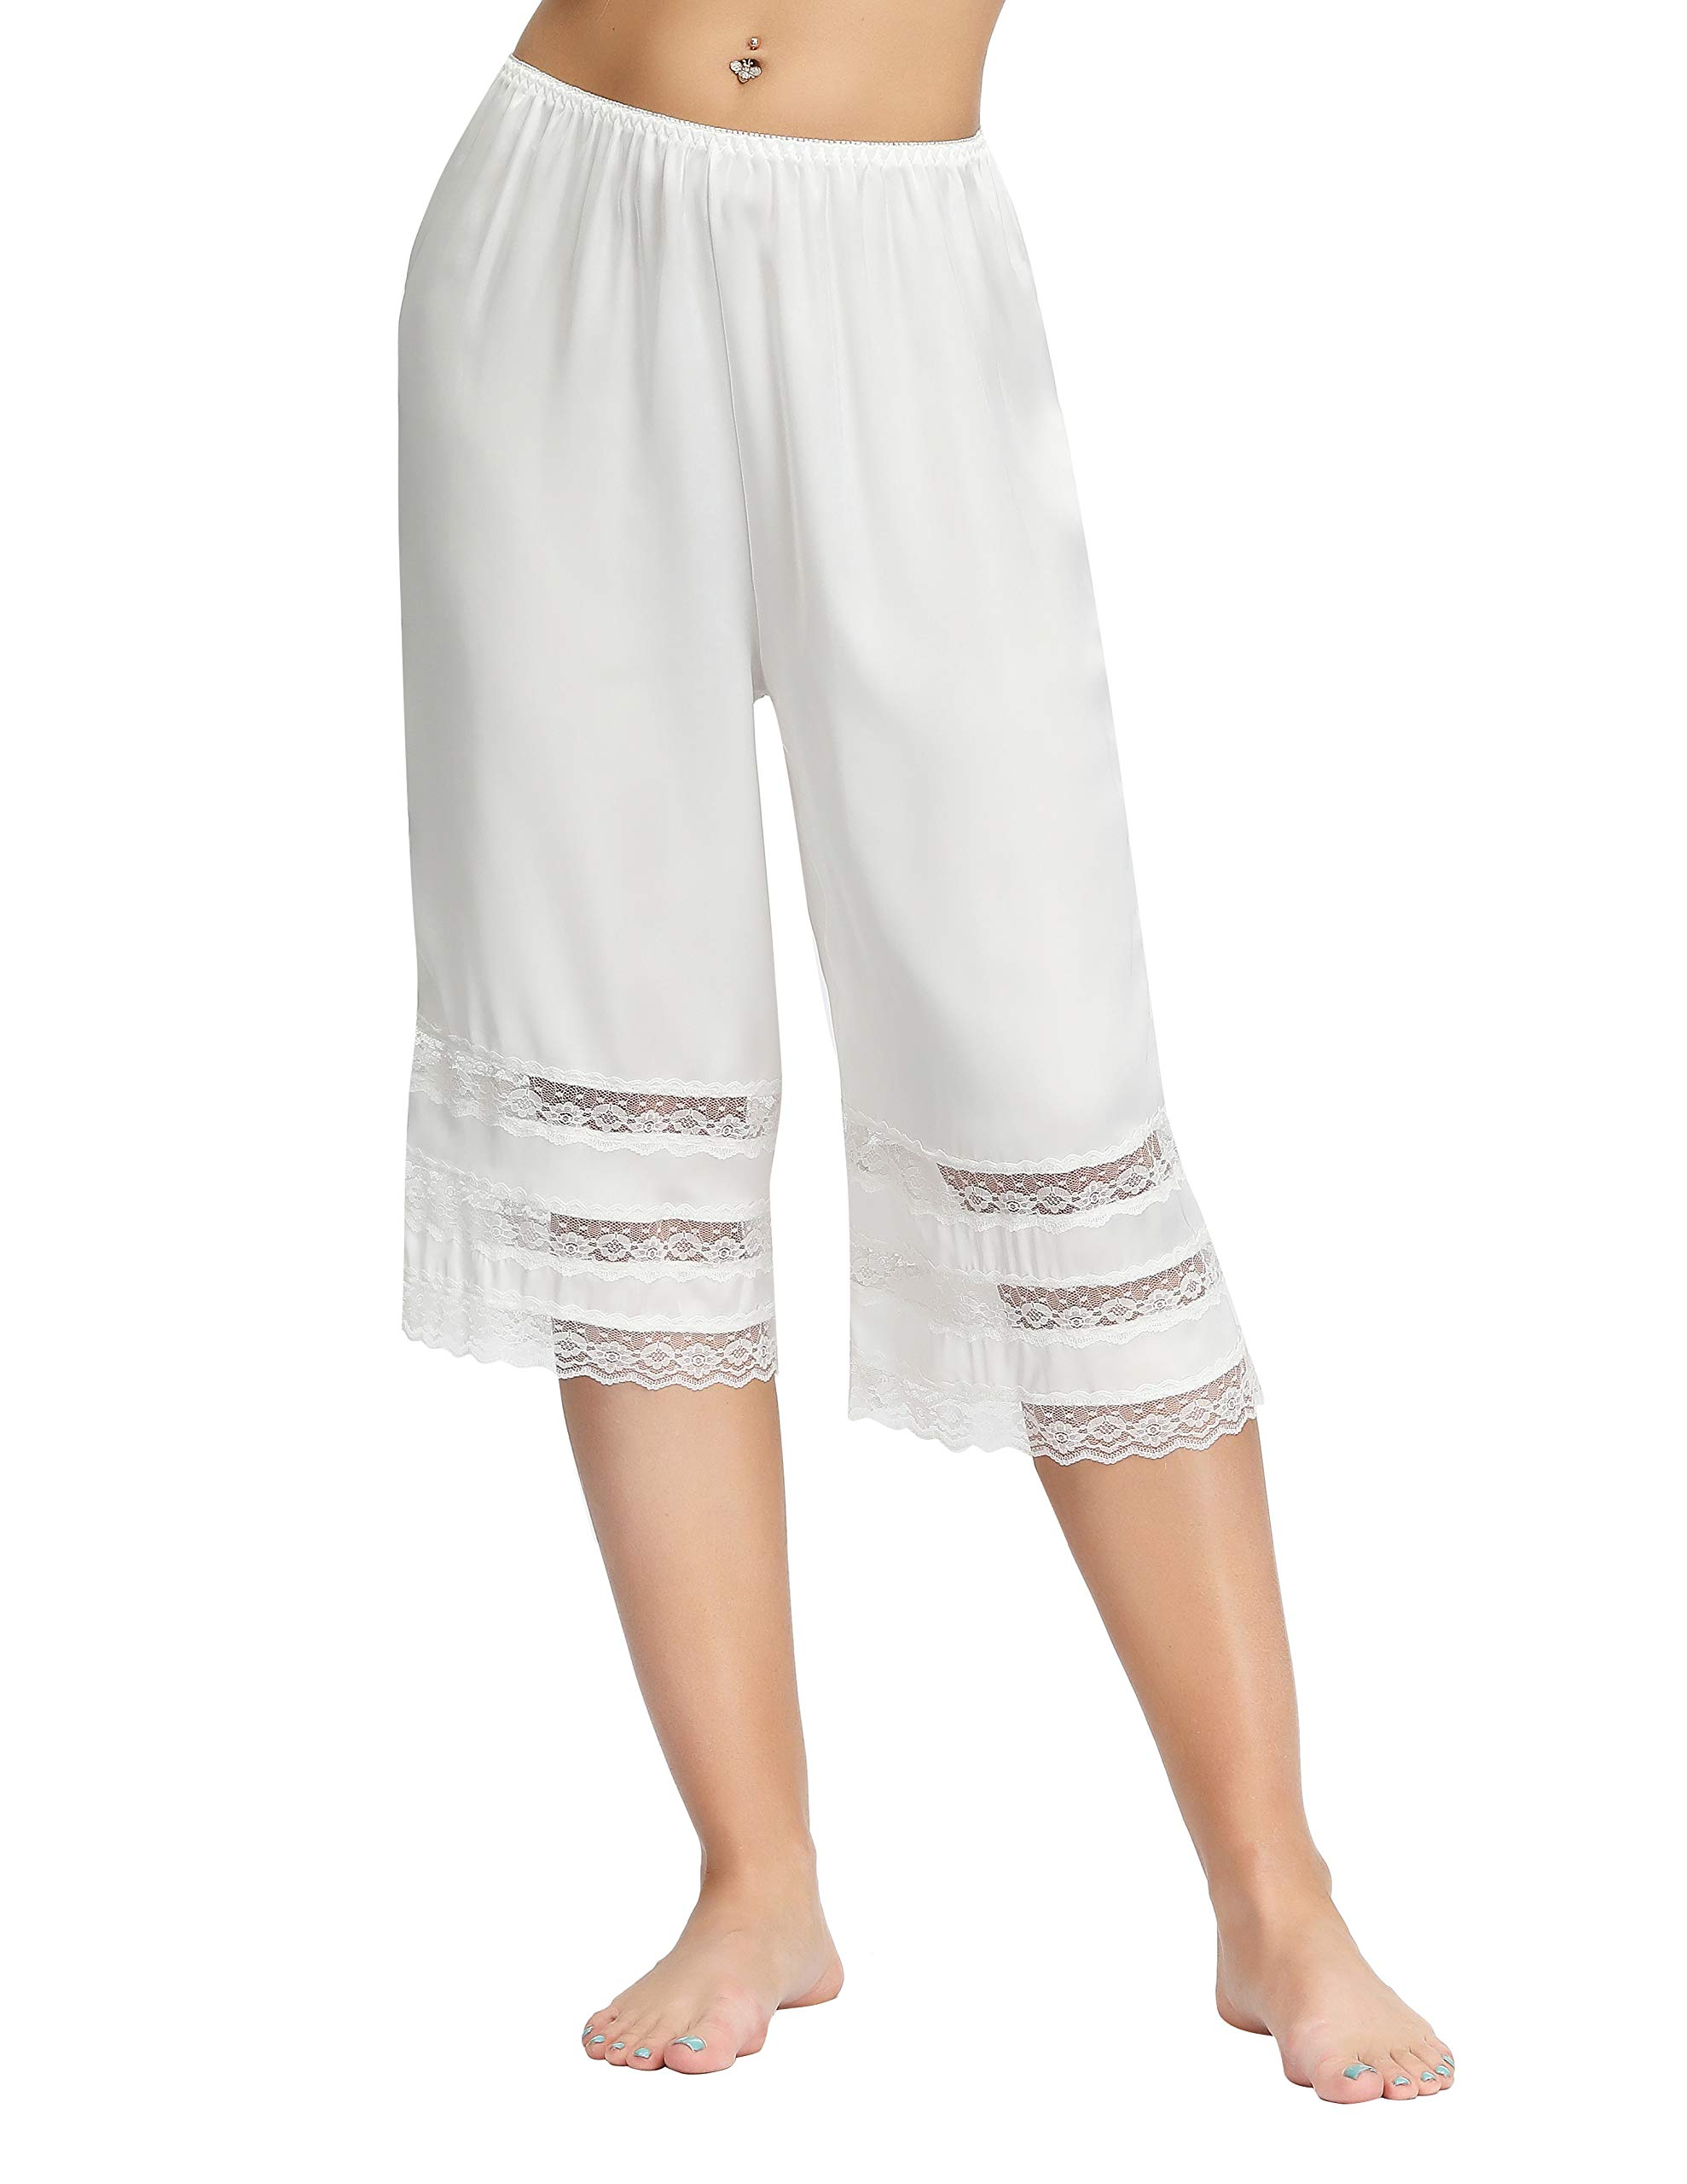 KANCY KOLE Anti-Static Half Slip Snip-it Lace Edge Pettipants Sleepwear Short Pants